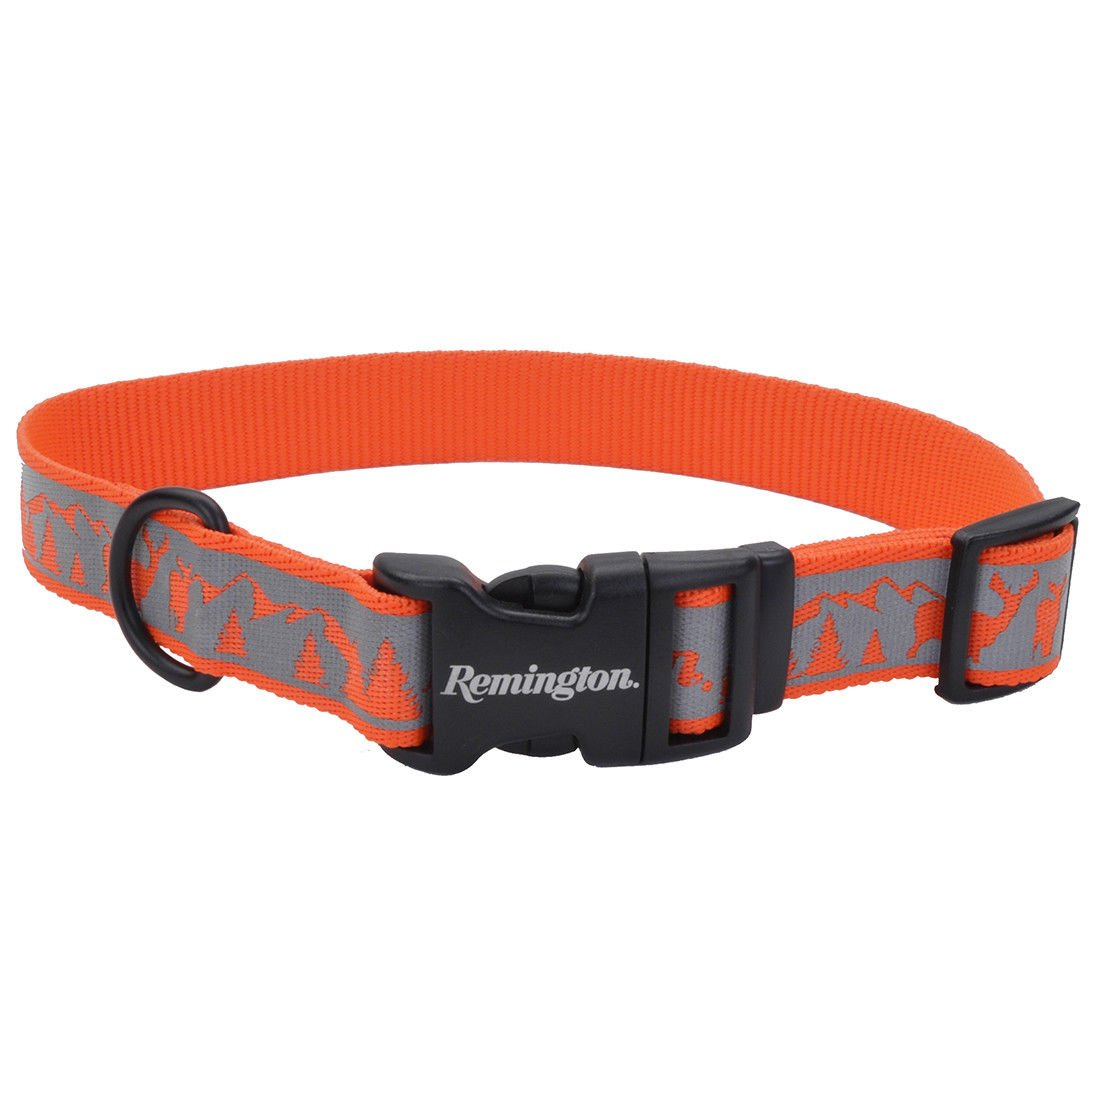 Coastal Pet Remington Orange Deer Mountain Hunting Reflective Collar 14-20'' by Coastal Pet